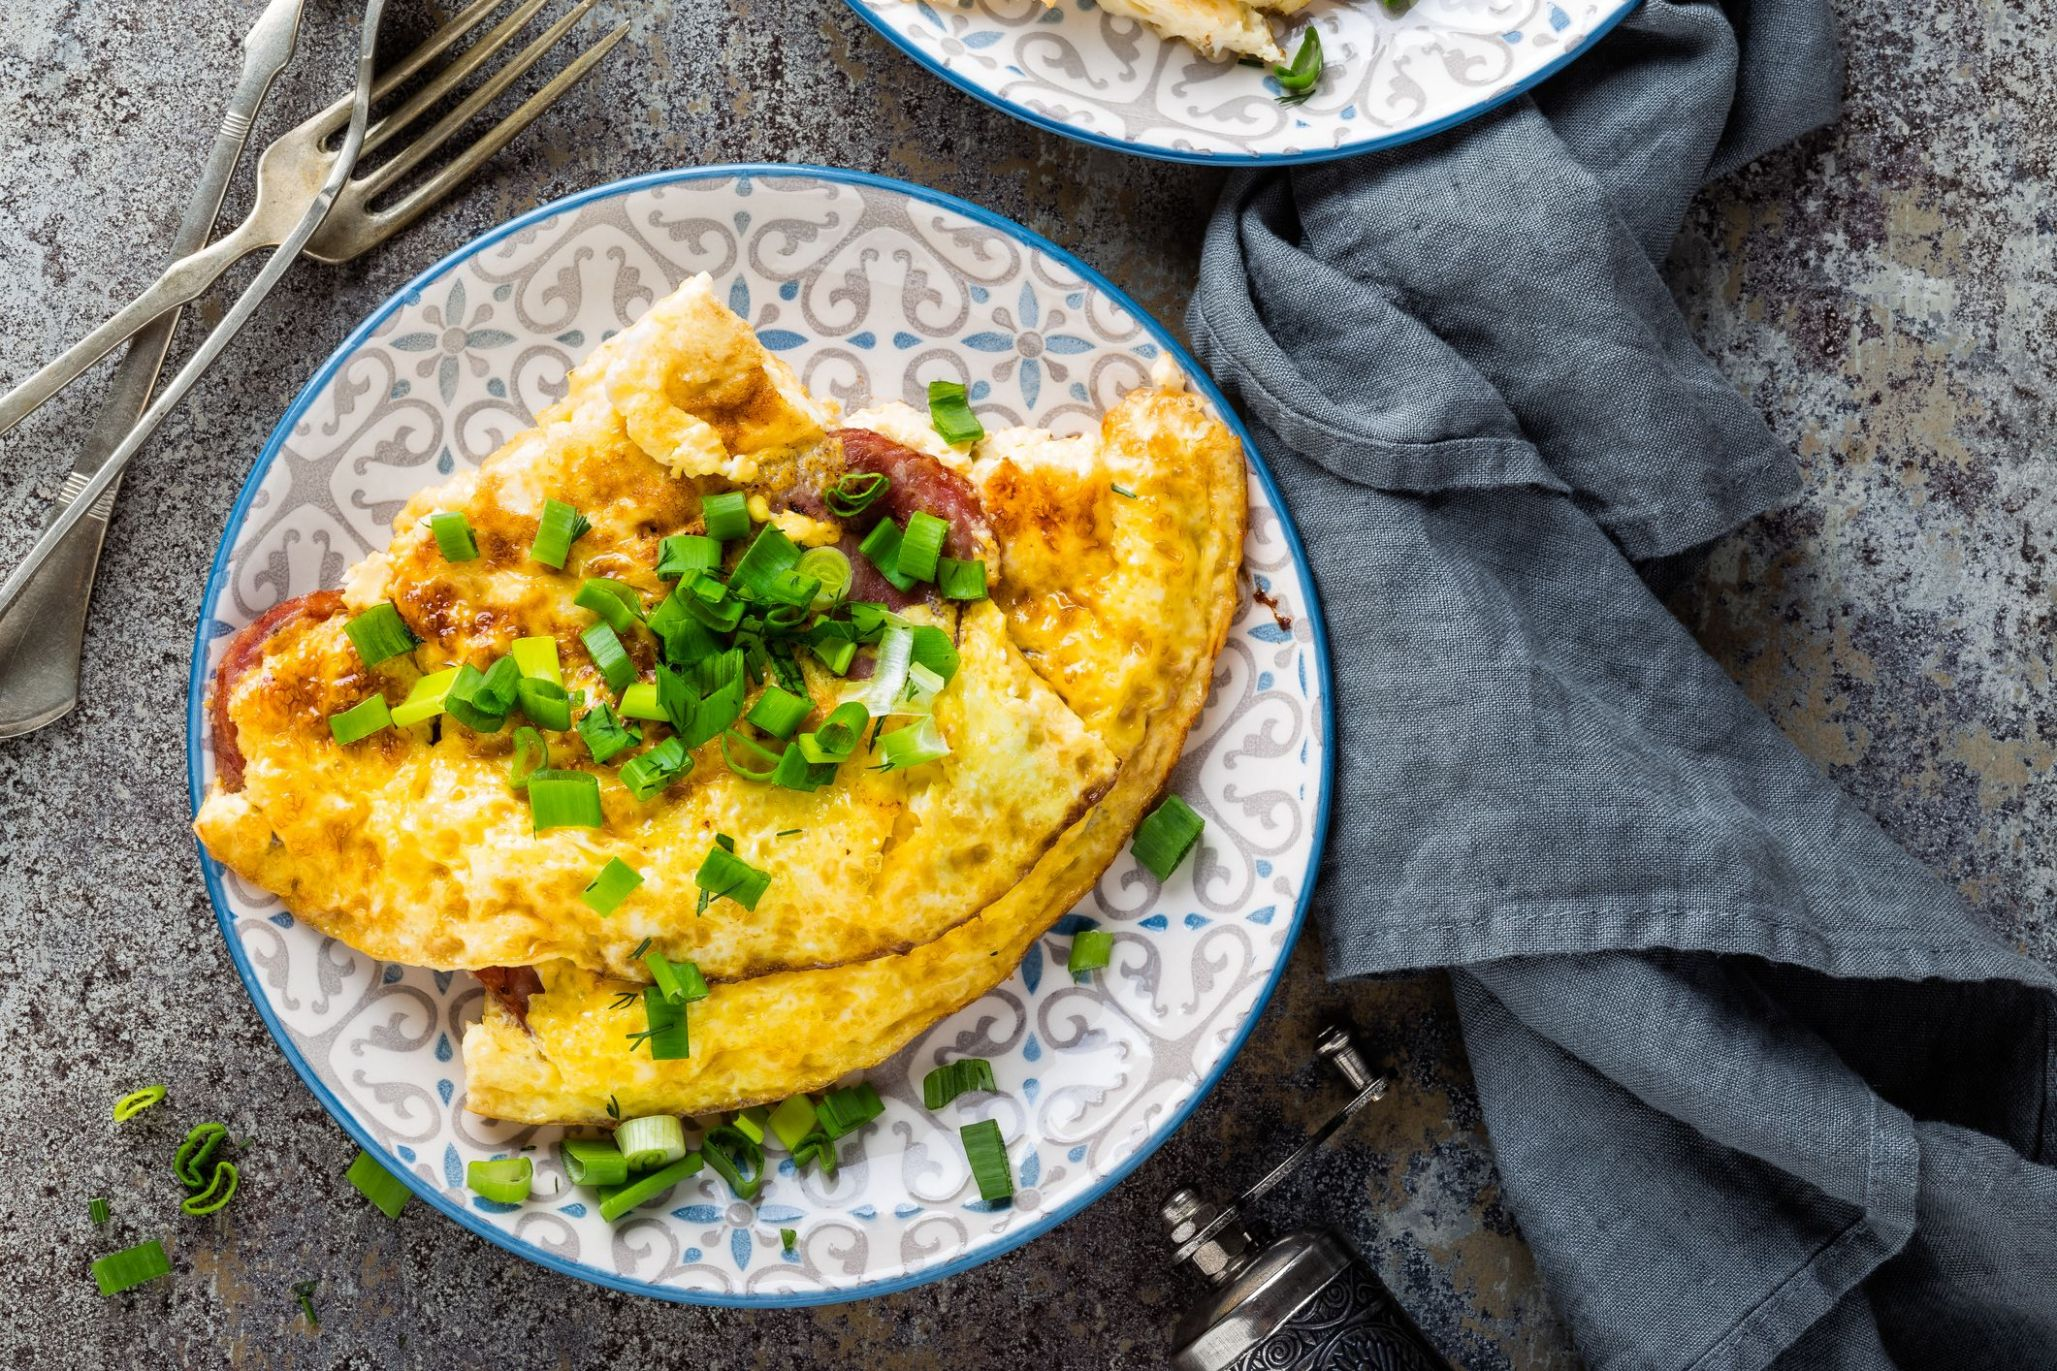 Light breakfast: Omelet with cheese | Light breakfast, Low carb ...